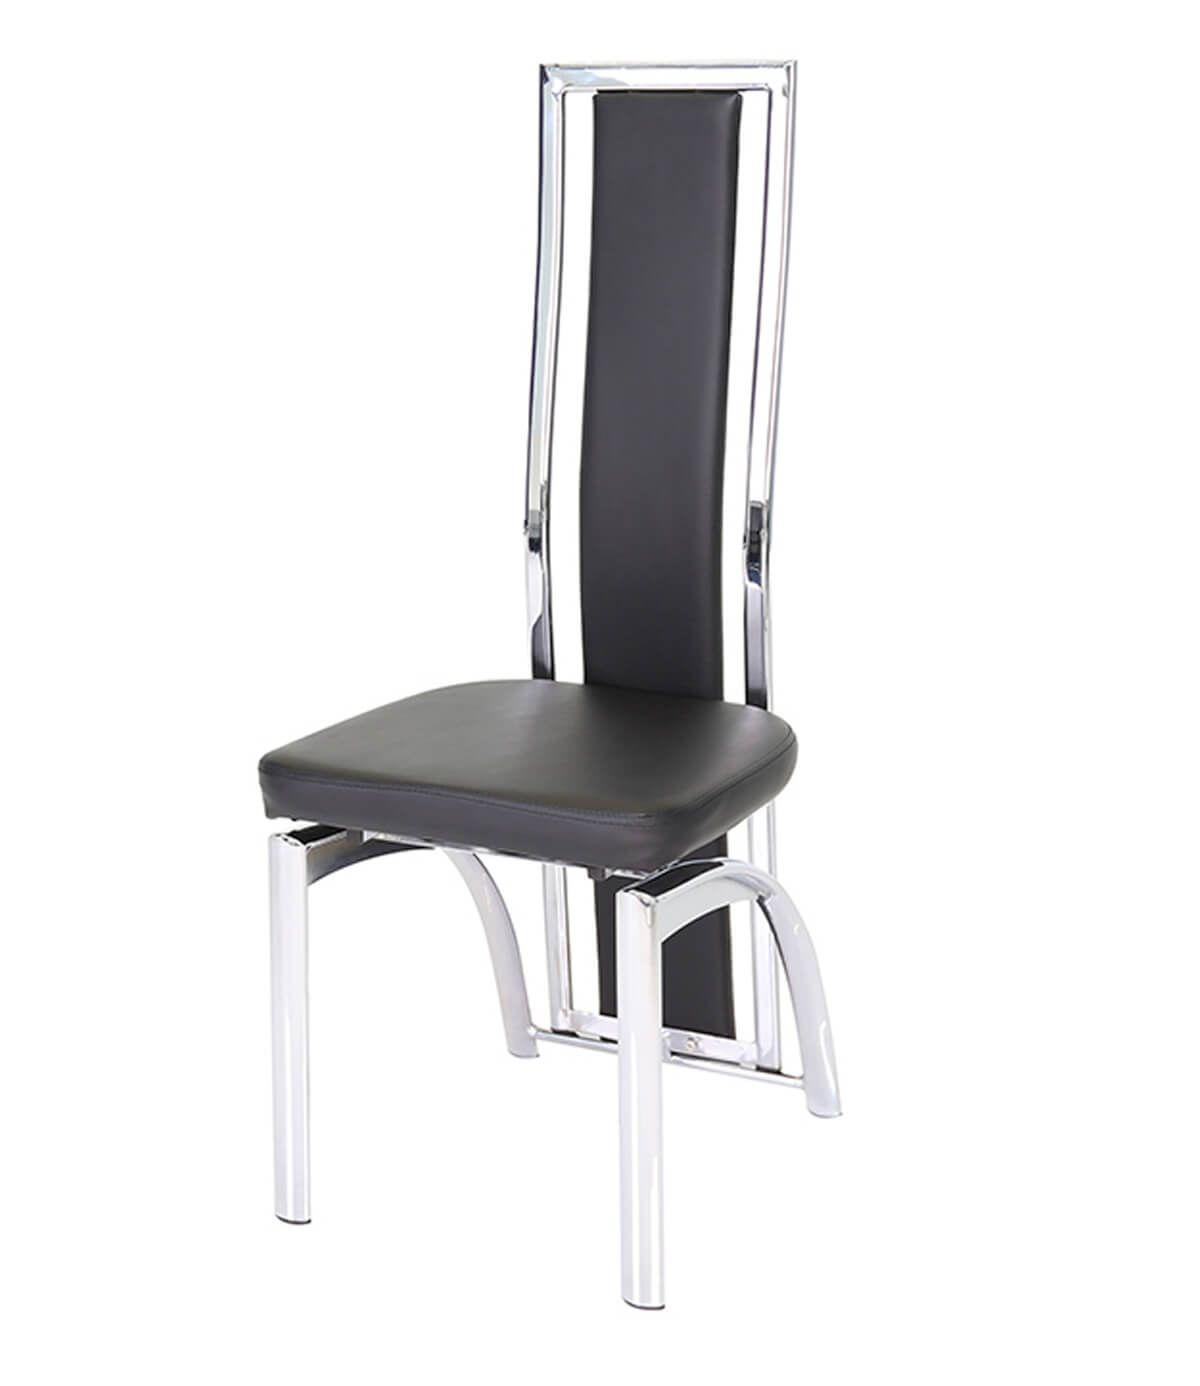 Mayfair black leather dining chair manchester furniture for Leather back dining chairs